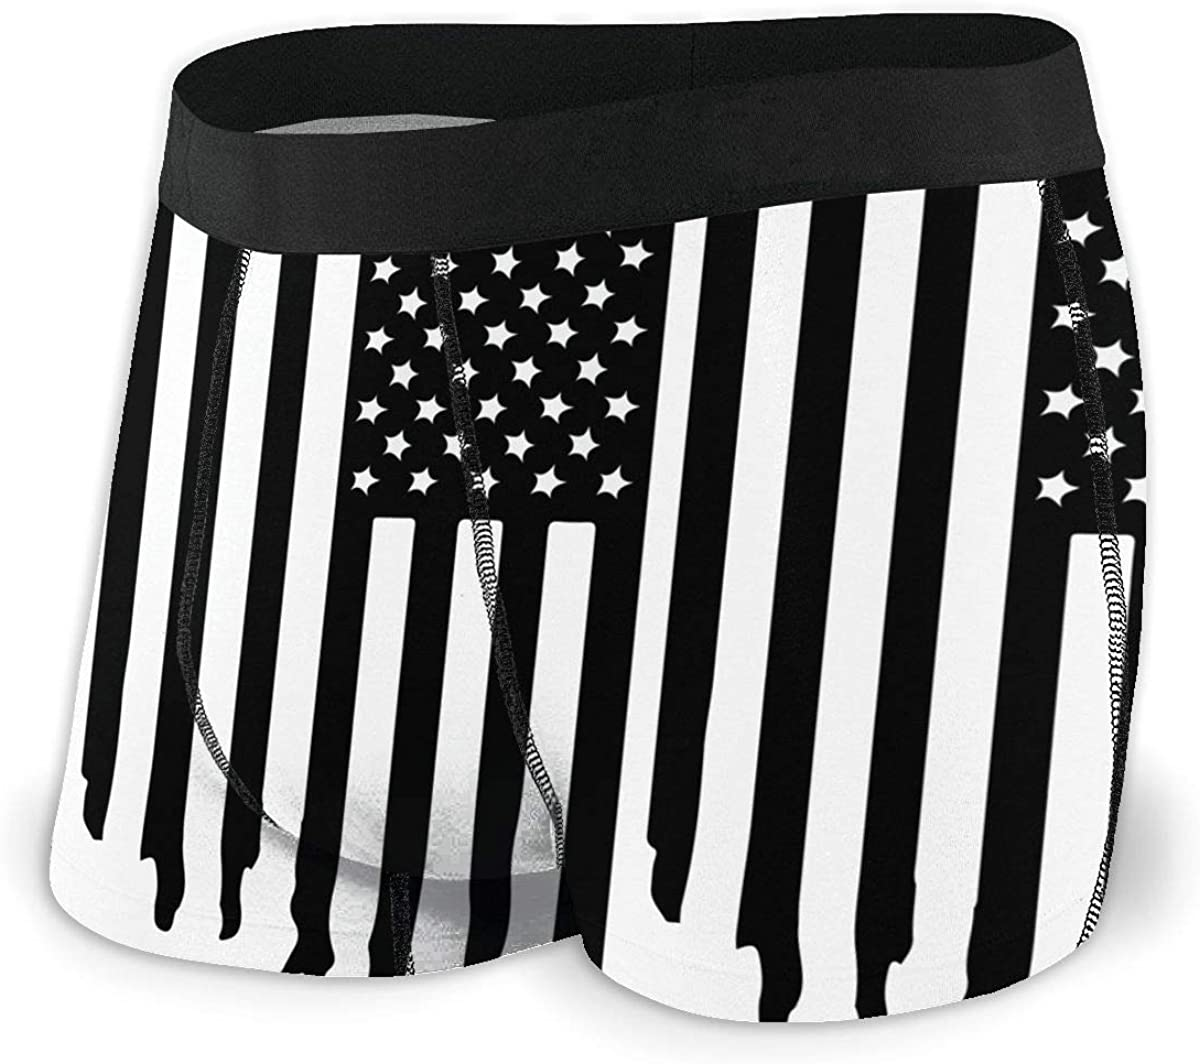 USA American Flag Black White Men Regular Leg Boxer Brief Underwear Ride-Up Panties